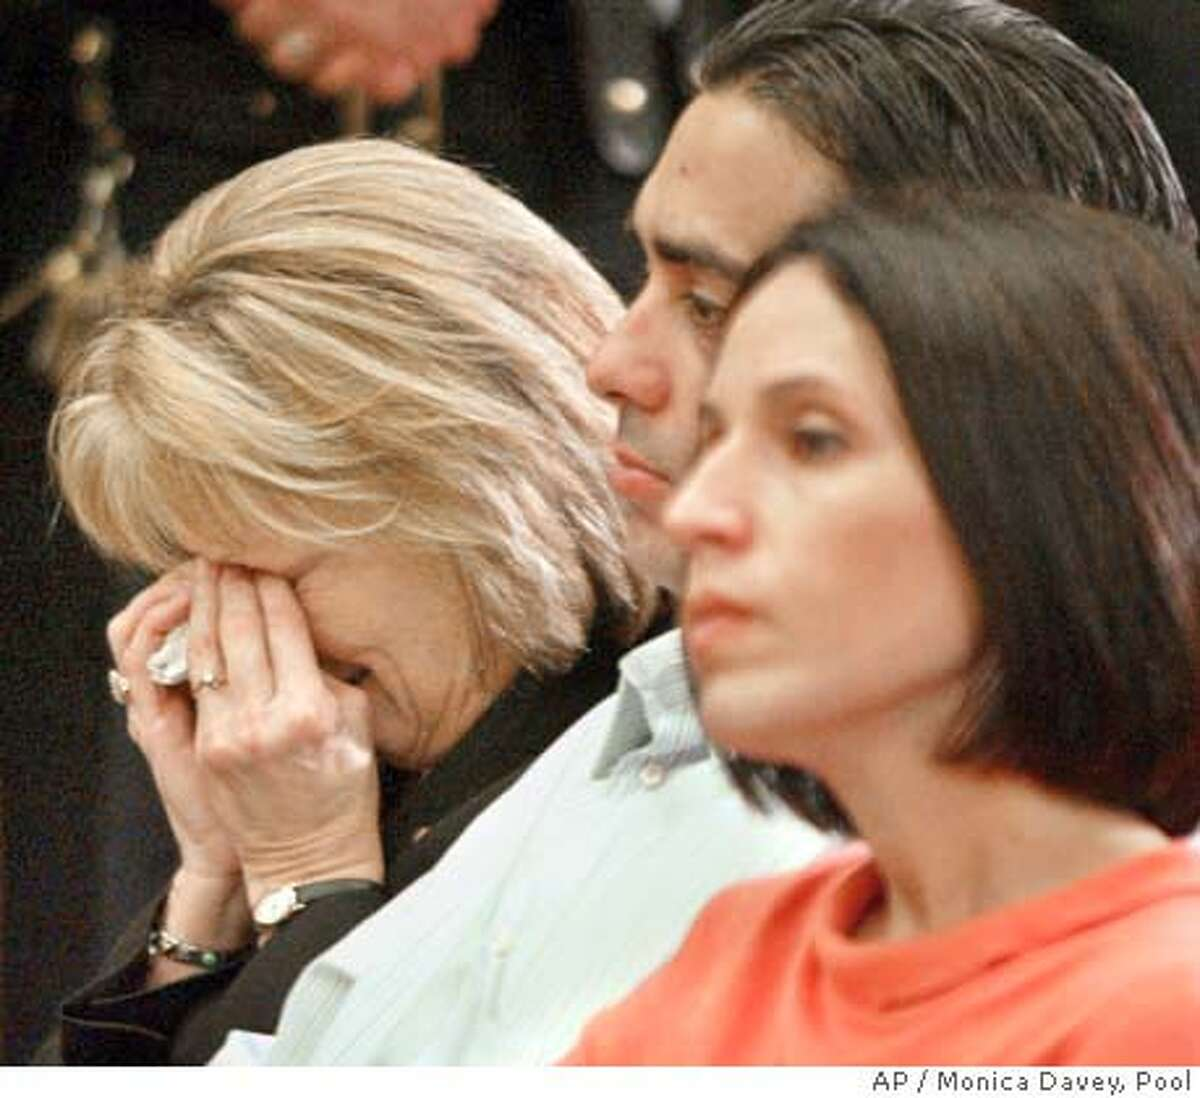 ** RETRANSMIT TO ADD MOTHER ** Sharon Rocha, Laci 's mother, left, Brent Rocha and his wife Rose Marie Rocha, right, are seen during a news conference after the verdict in Redwood City, Calif., Monday, Dec. 13, 2004. The jury returned with a sentence recommendation of death in the penalty phase of the Scott case. was convicted of two counts of murder in the deaths of his wife Laci and their unborn child. (AP Photo/EPA, Monica Davey, POOL)